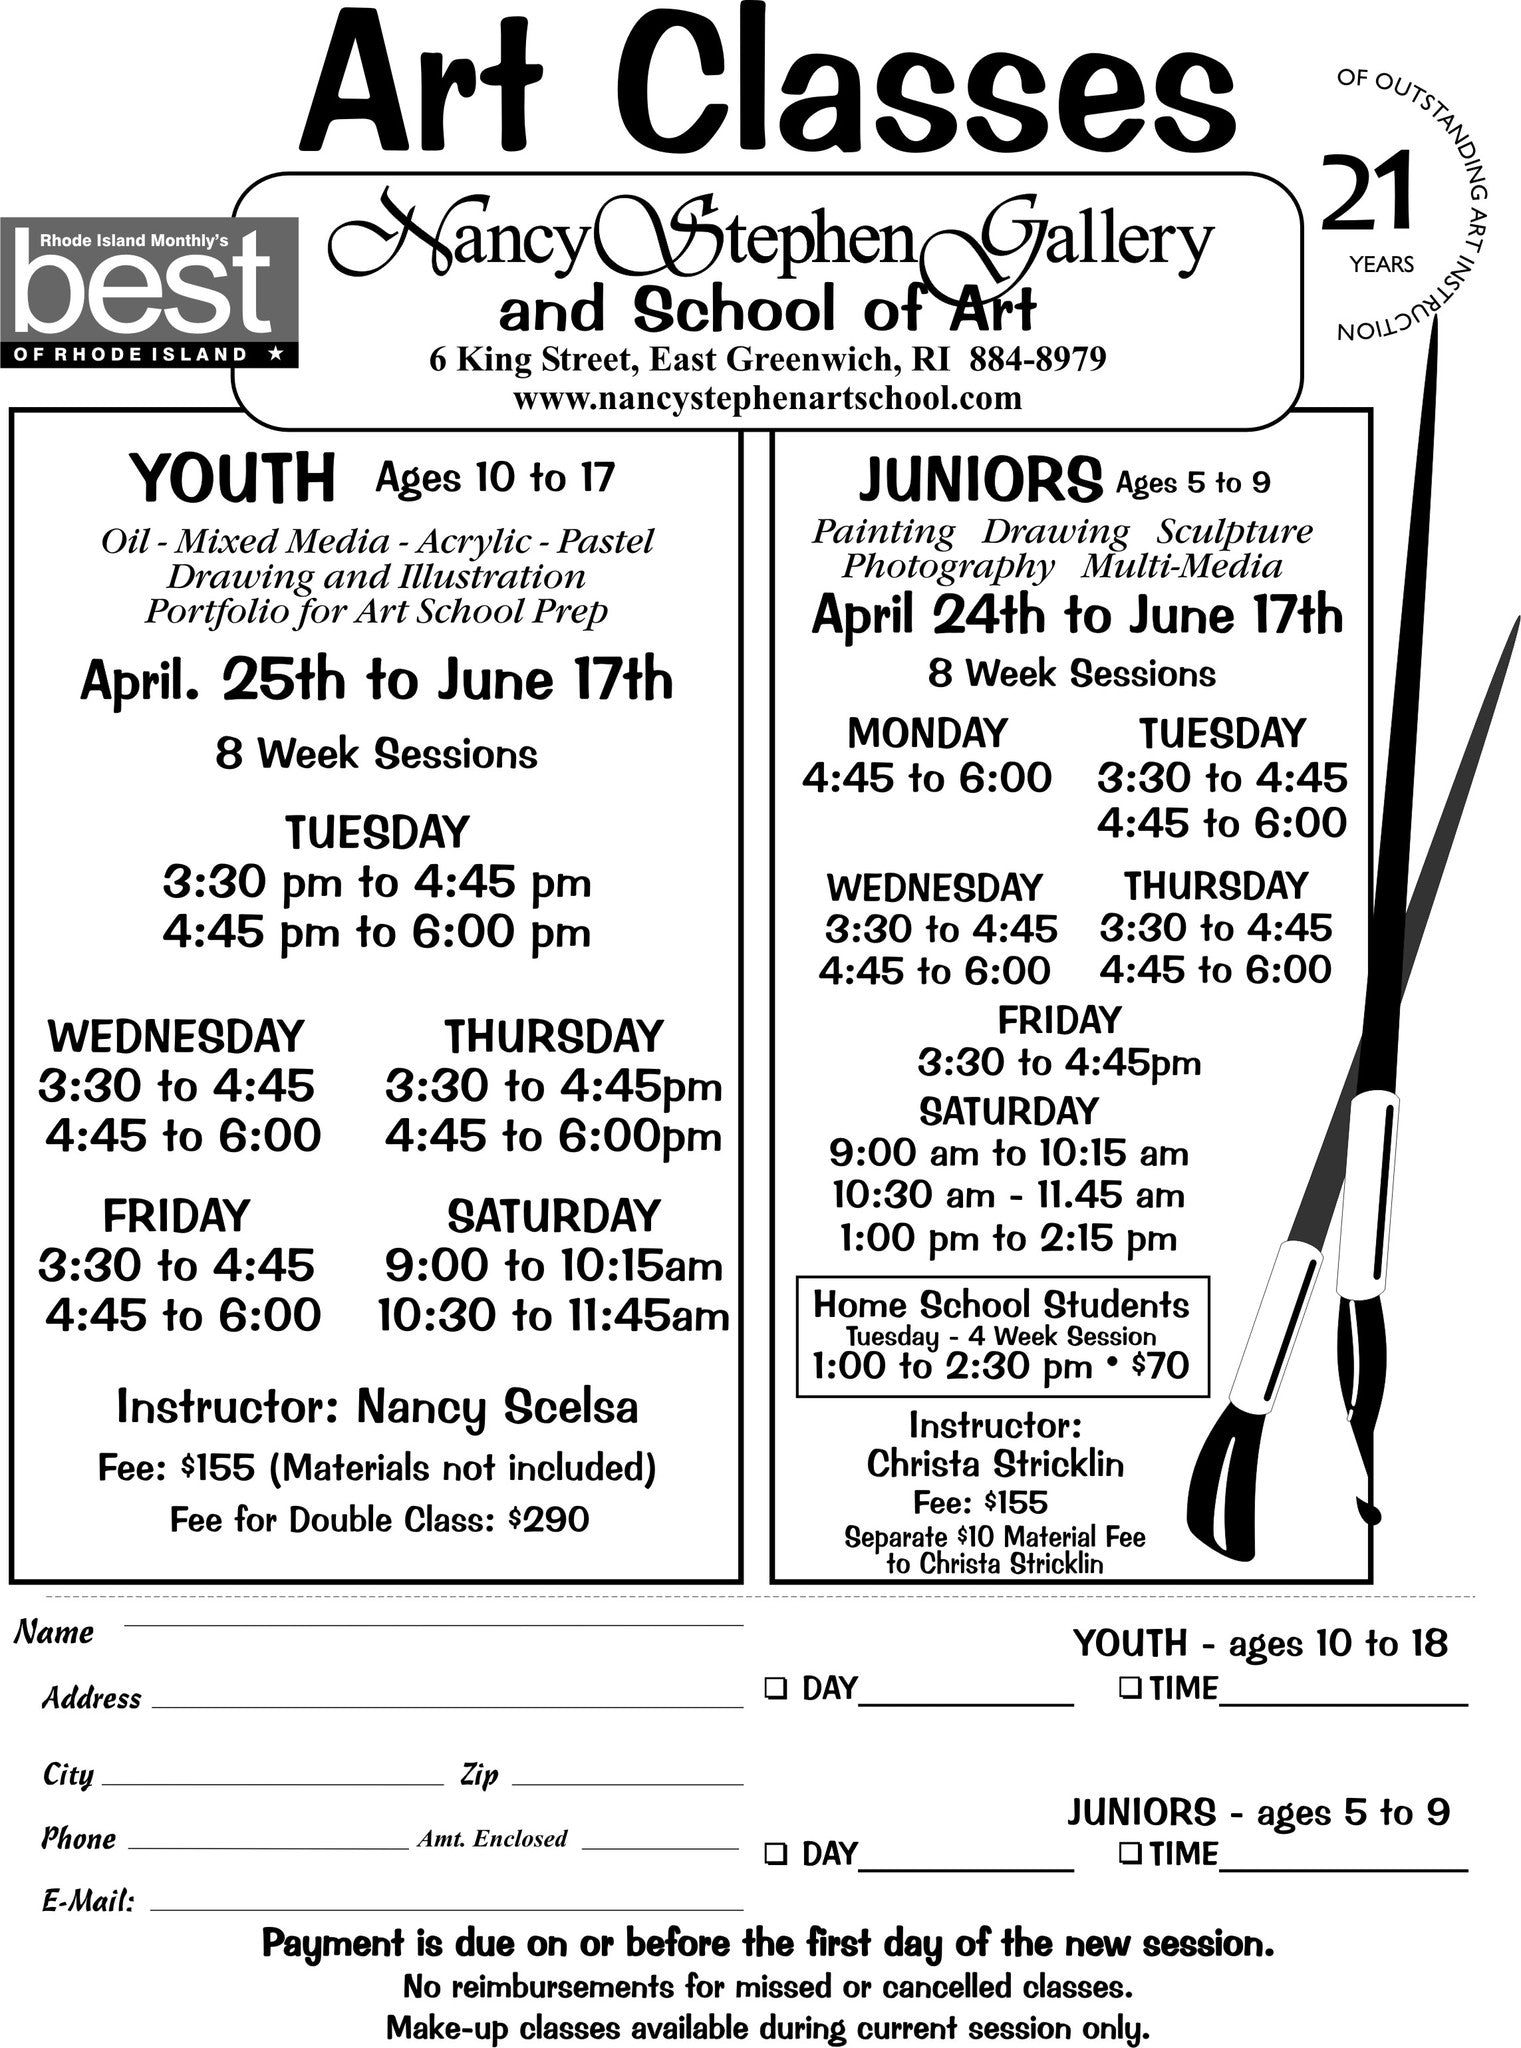 Youth and Junior Art Class Registration form